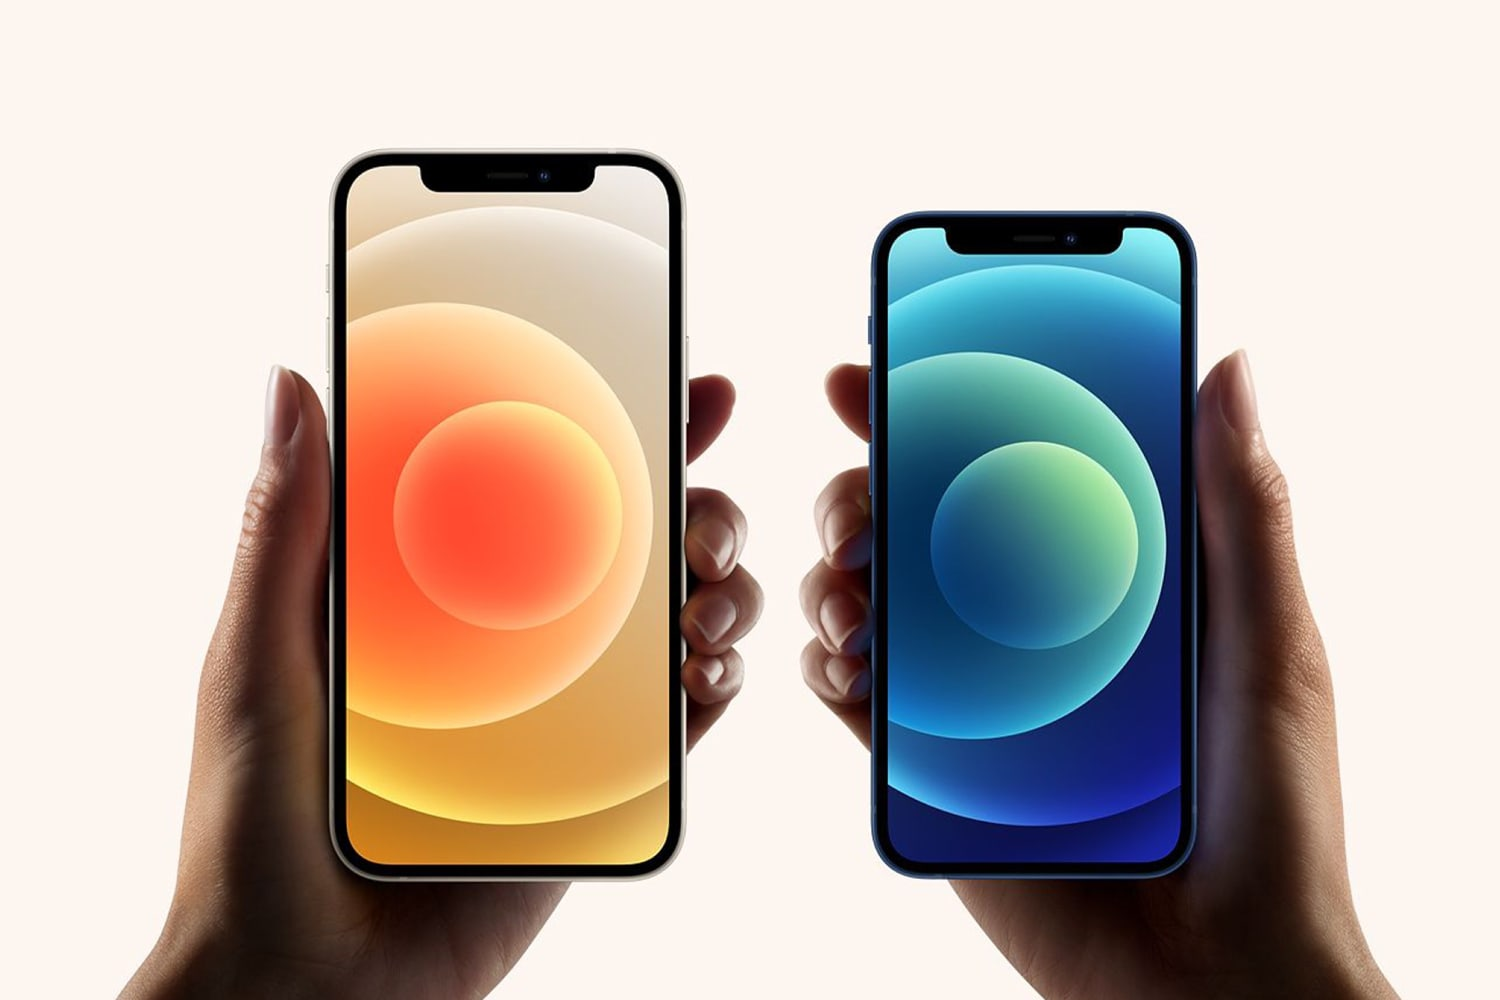 apple-could-ship-250-million-iphones-in-2021-20201217-7